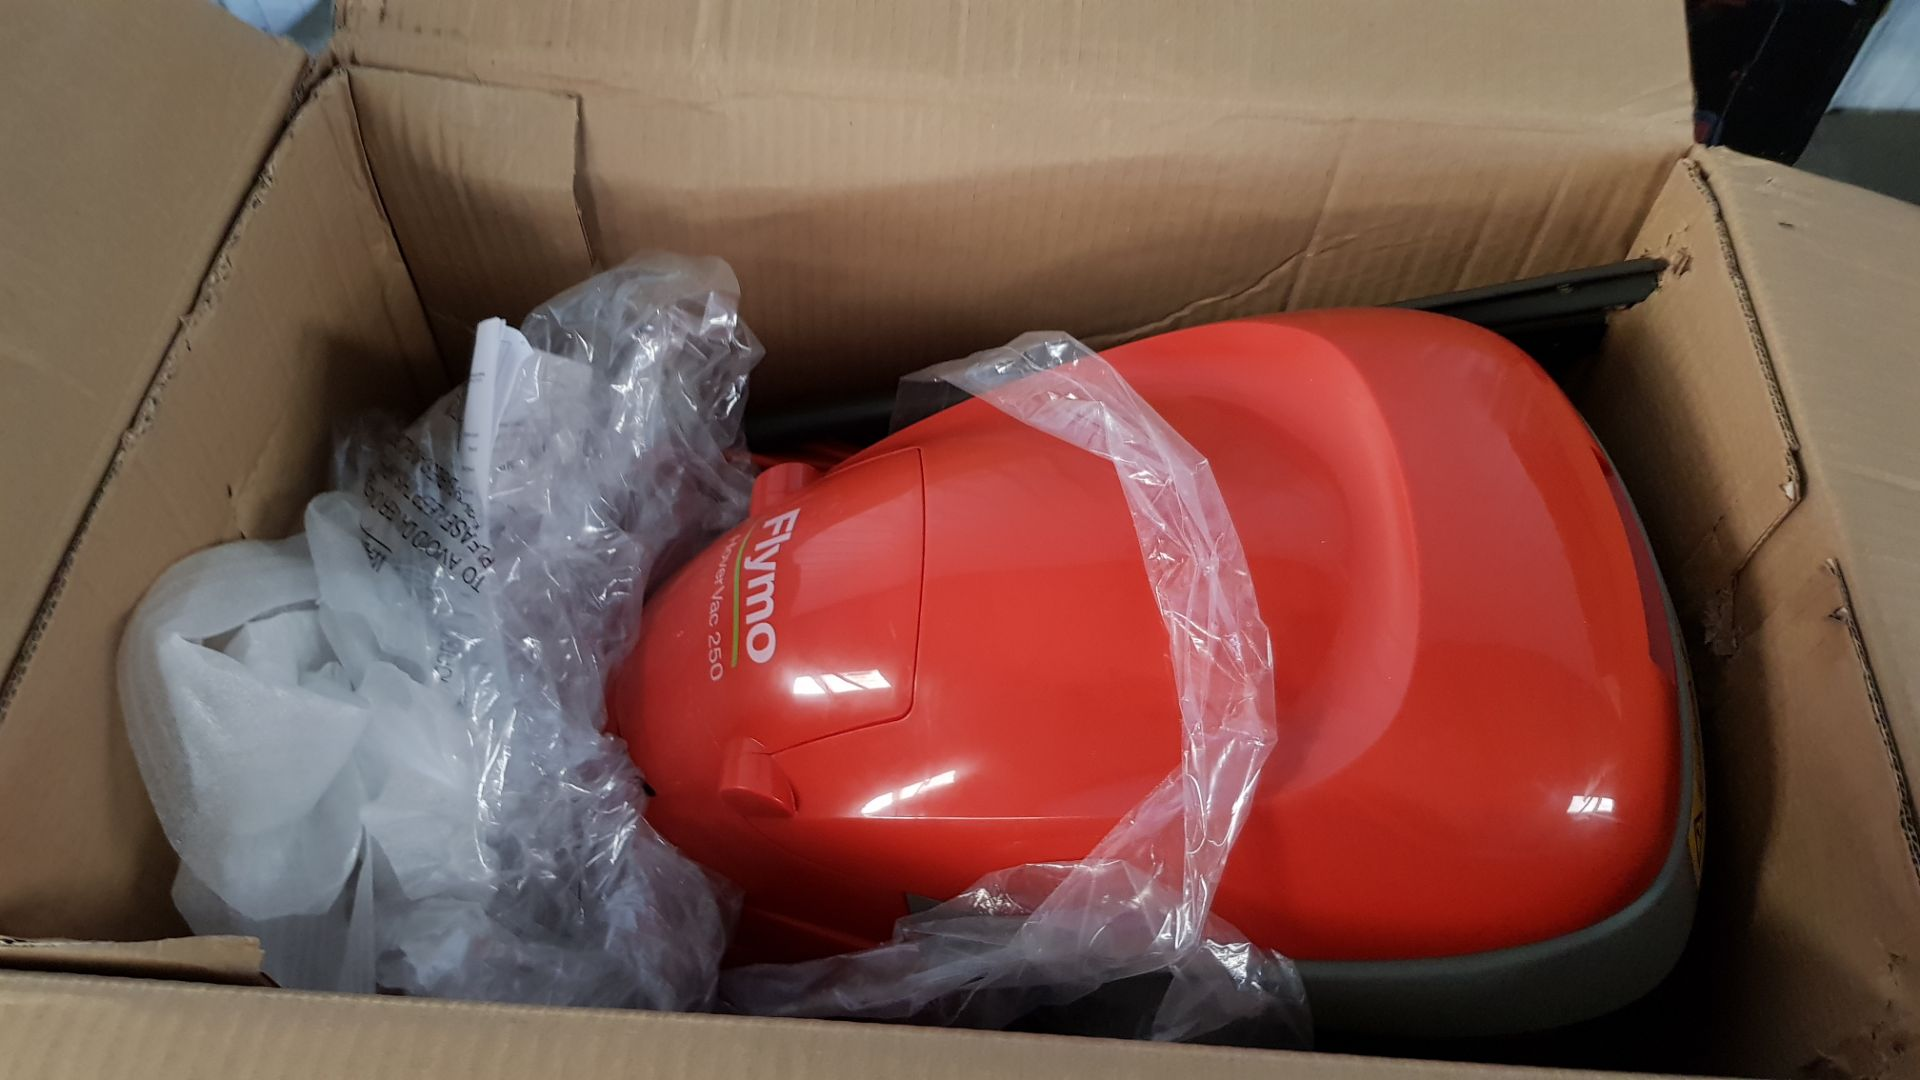 (P8) 1x Flymo Hover Vac 250 RRP £80. Contents Appear Clean, Unused. - Image 5 of 5